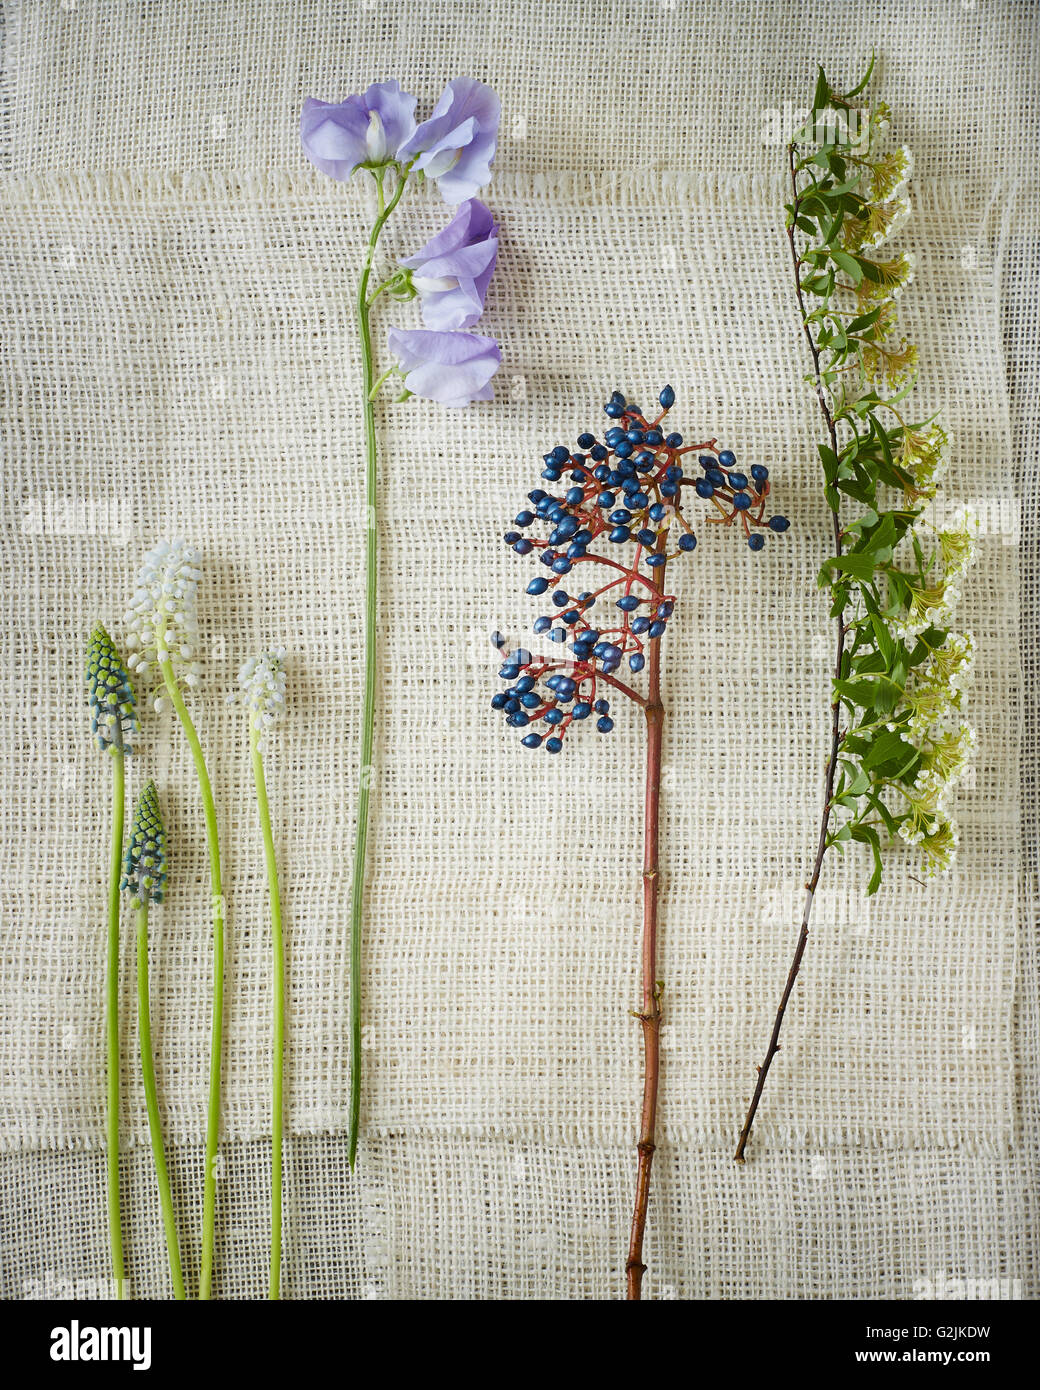 Wildflower Stems on Gauze Fabric - Stock Image